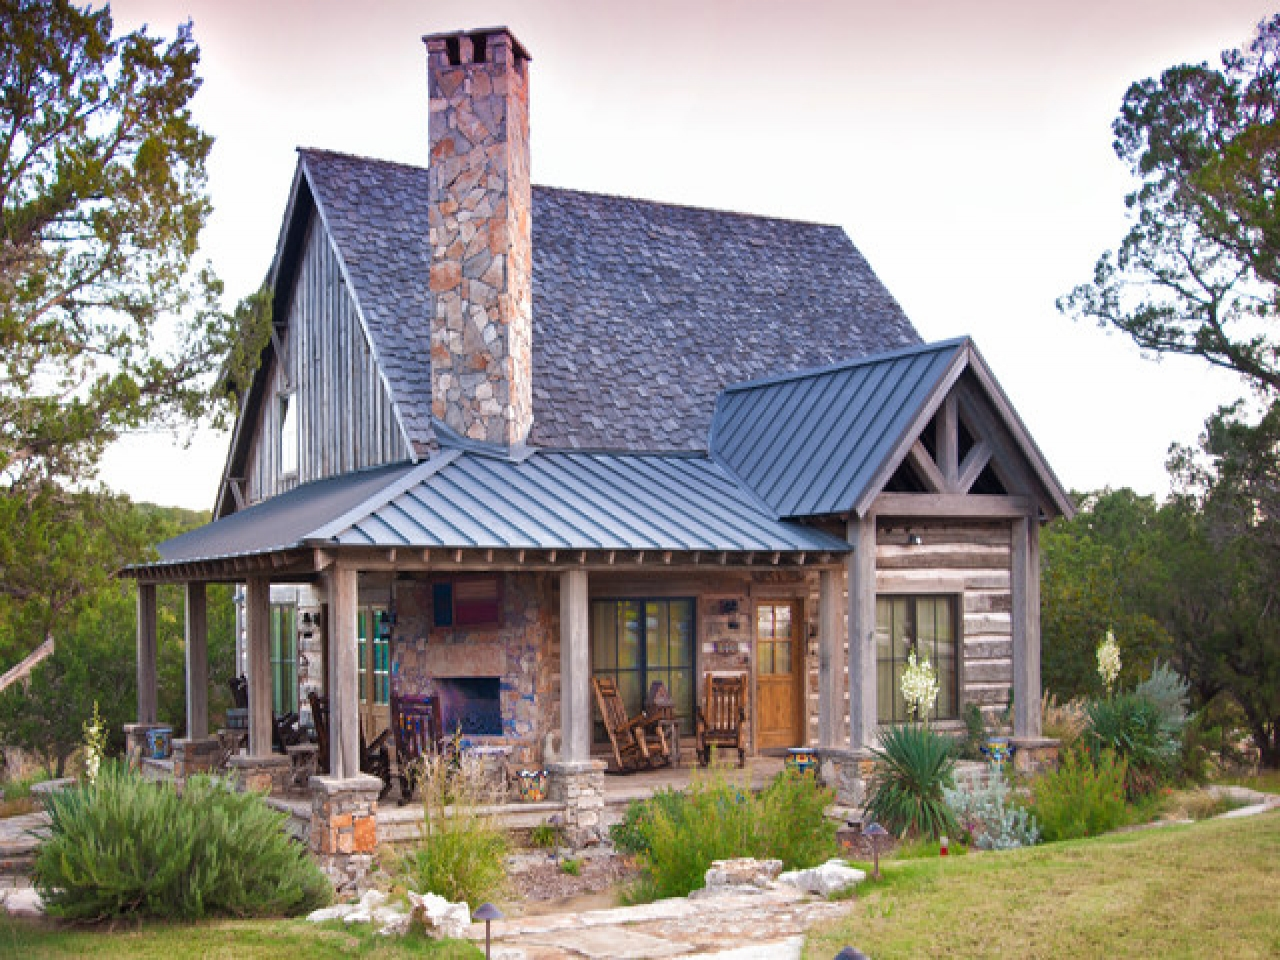 Rustic Cabin Exterior Ideas Log Cabin Exterior Paint Colors small vacation cabin plans